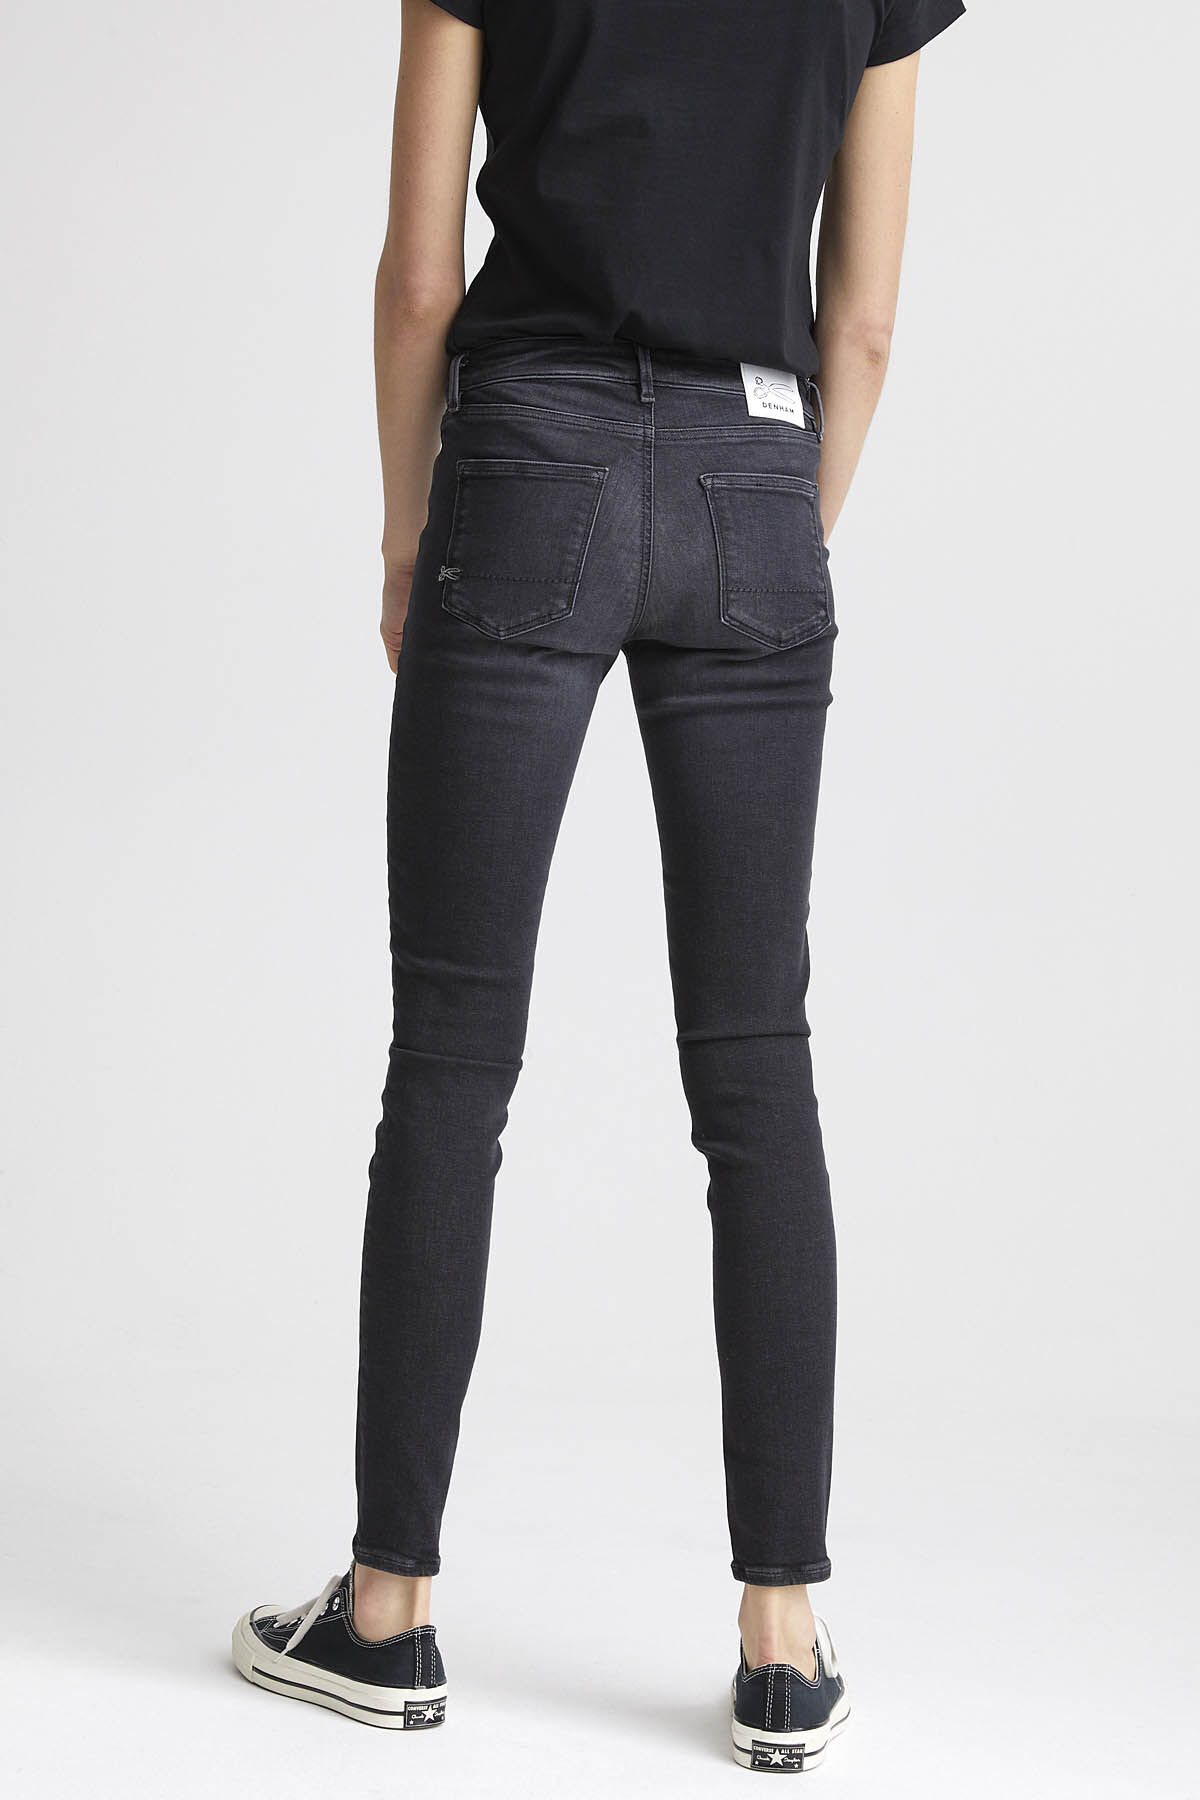 SPRAY Soft Fade Denim - Mid-rise, Tight Fit